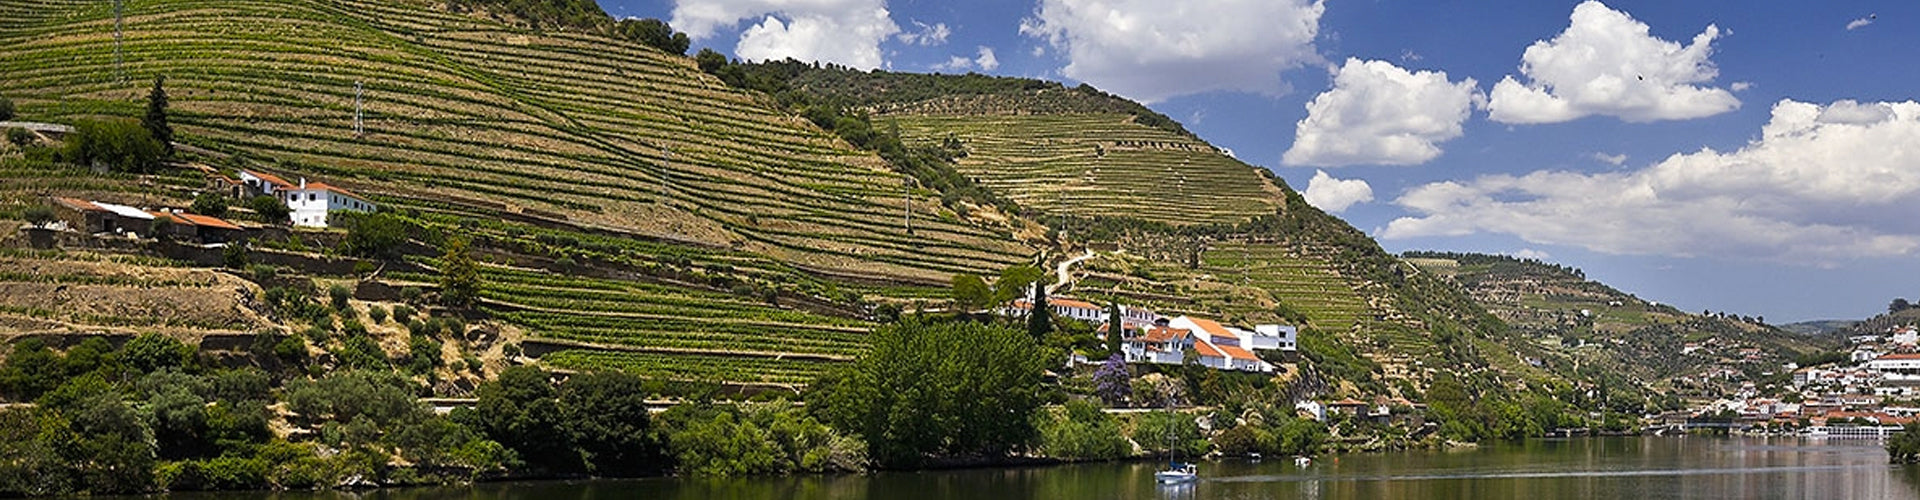 Quinta de la Rosa on the banks of the Douro in Portugal